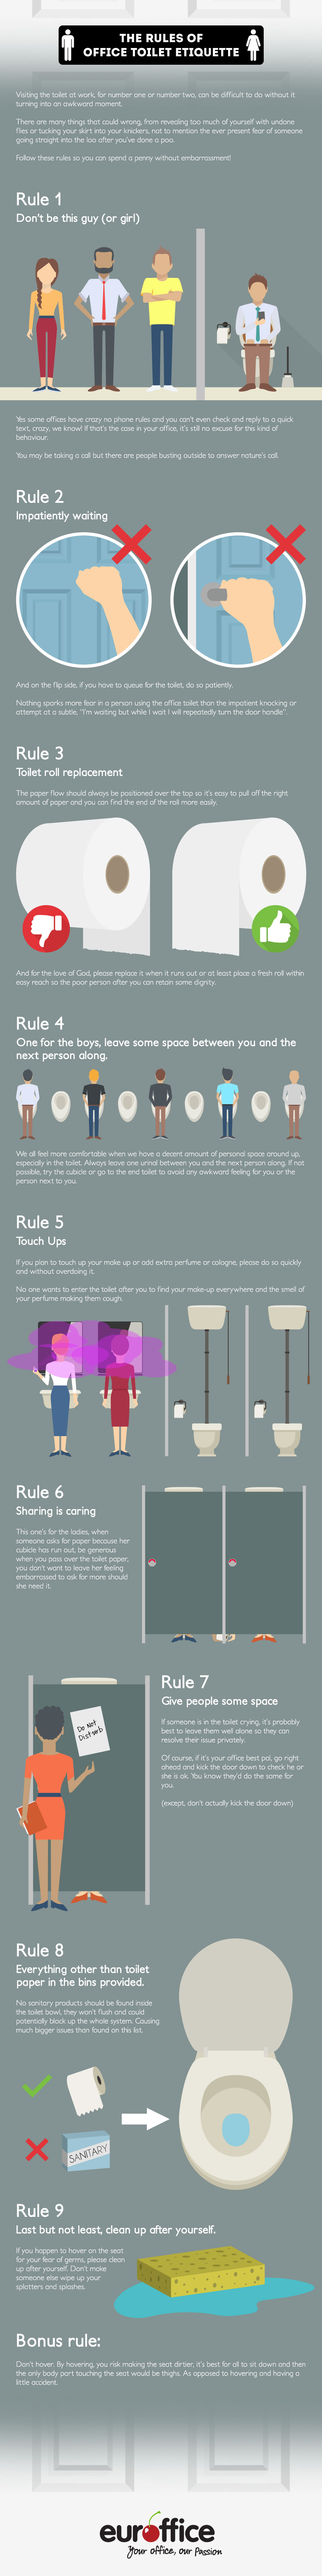 How To Use Your Office Toilet - Infographic